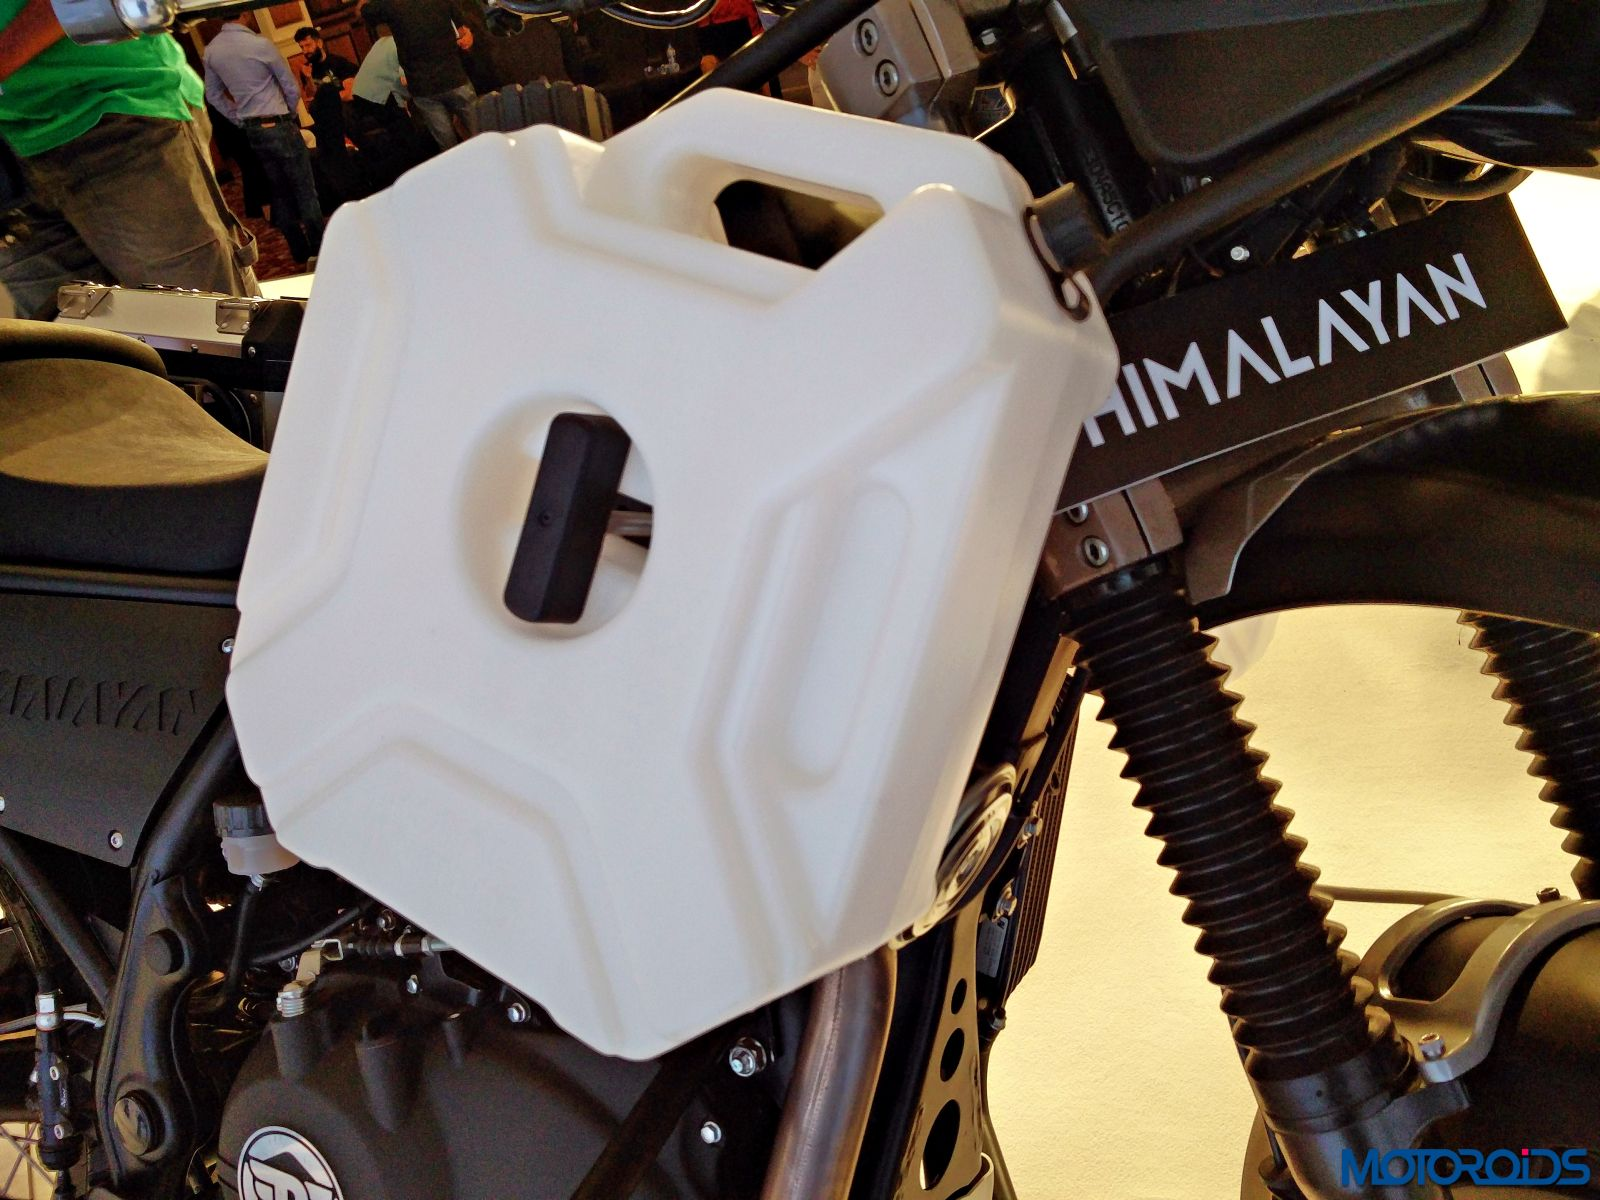 List: 9 accessories for the Royal Enfield Himalayan | Motoroids